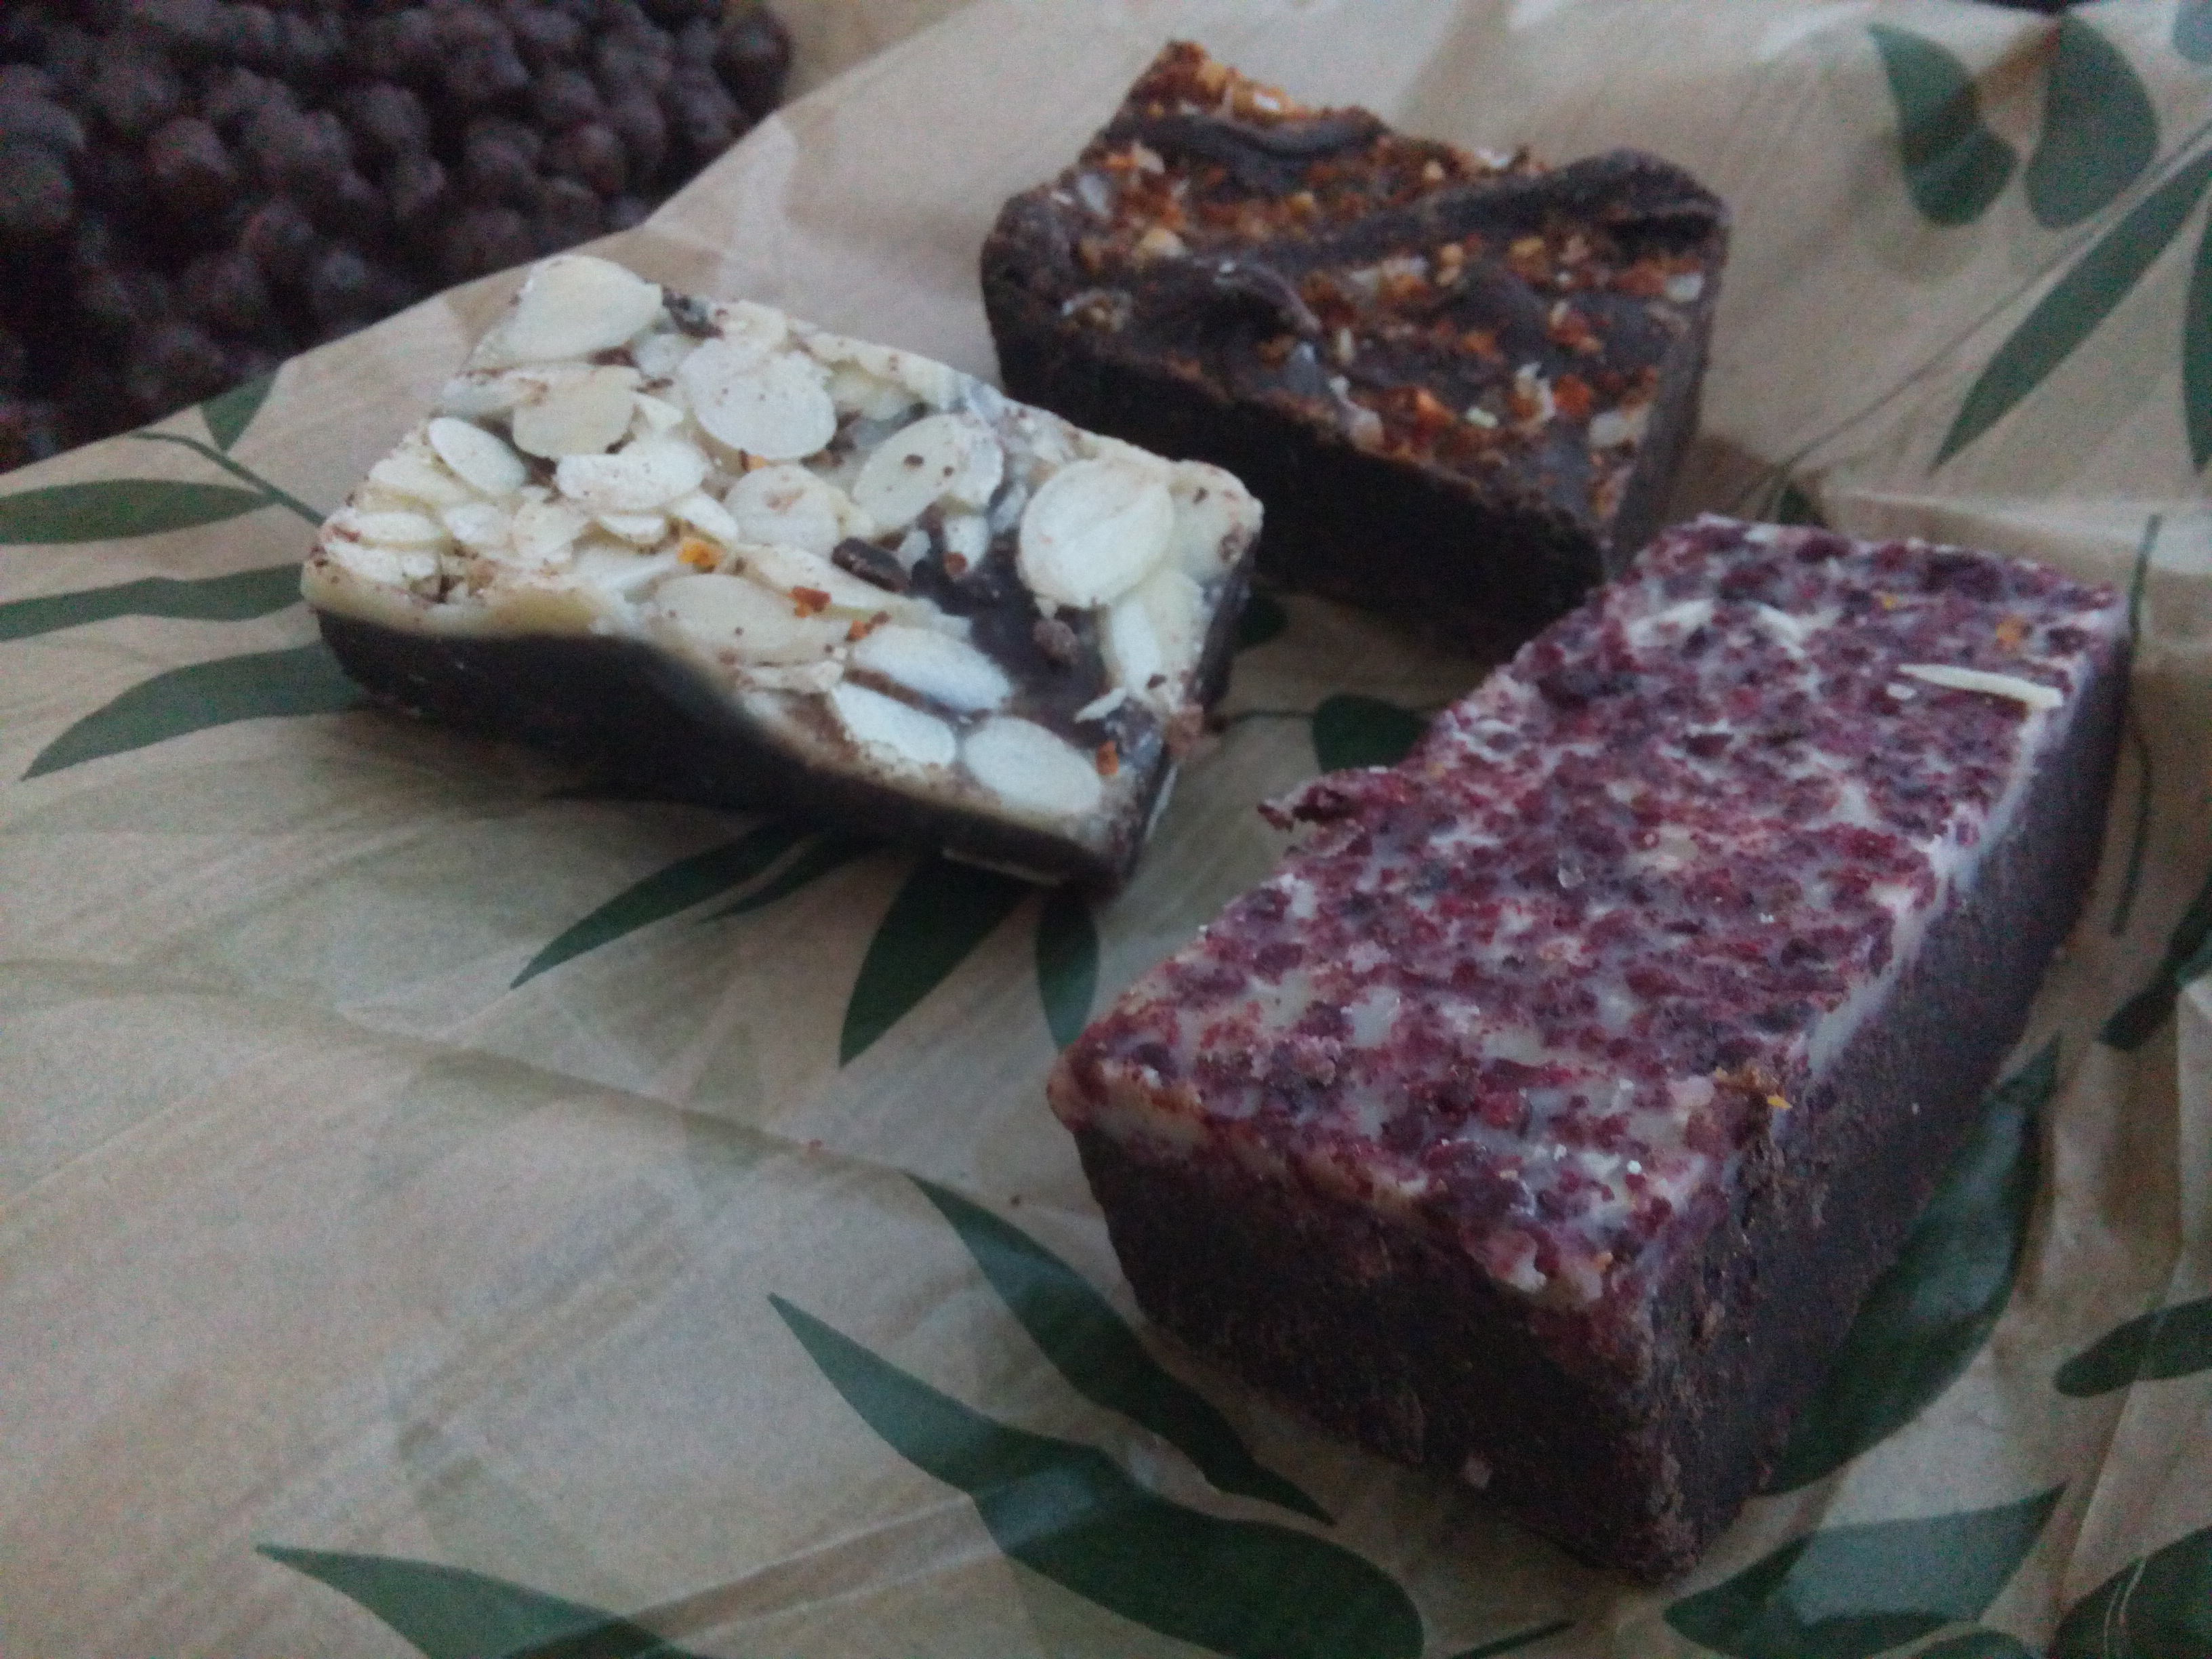 Three slabs of chocolate with different coloured toppings on a brown paper bag